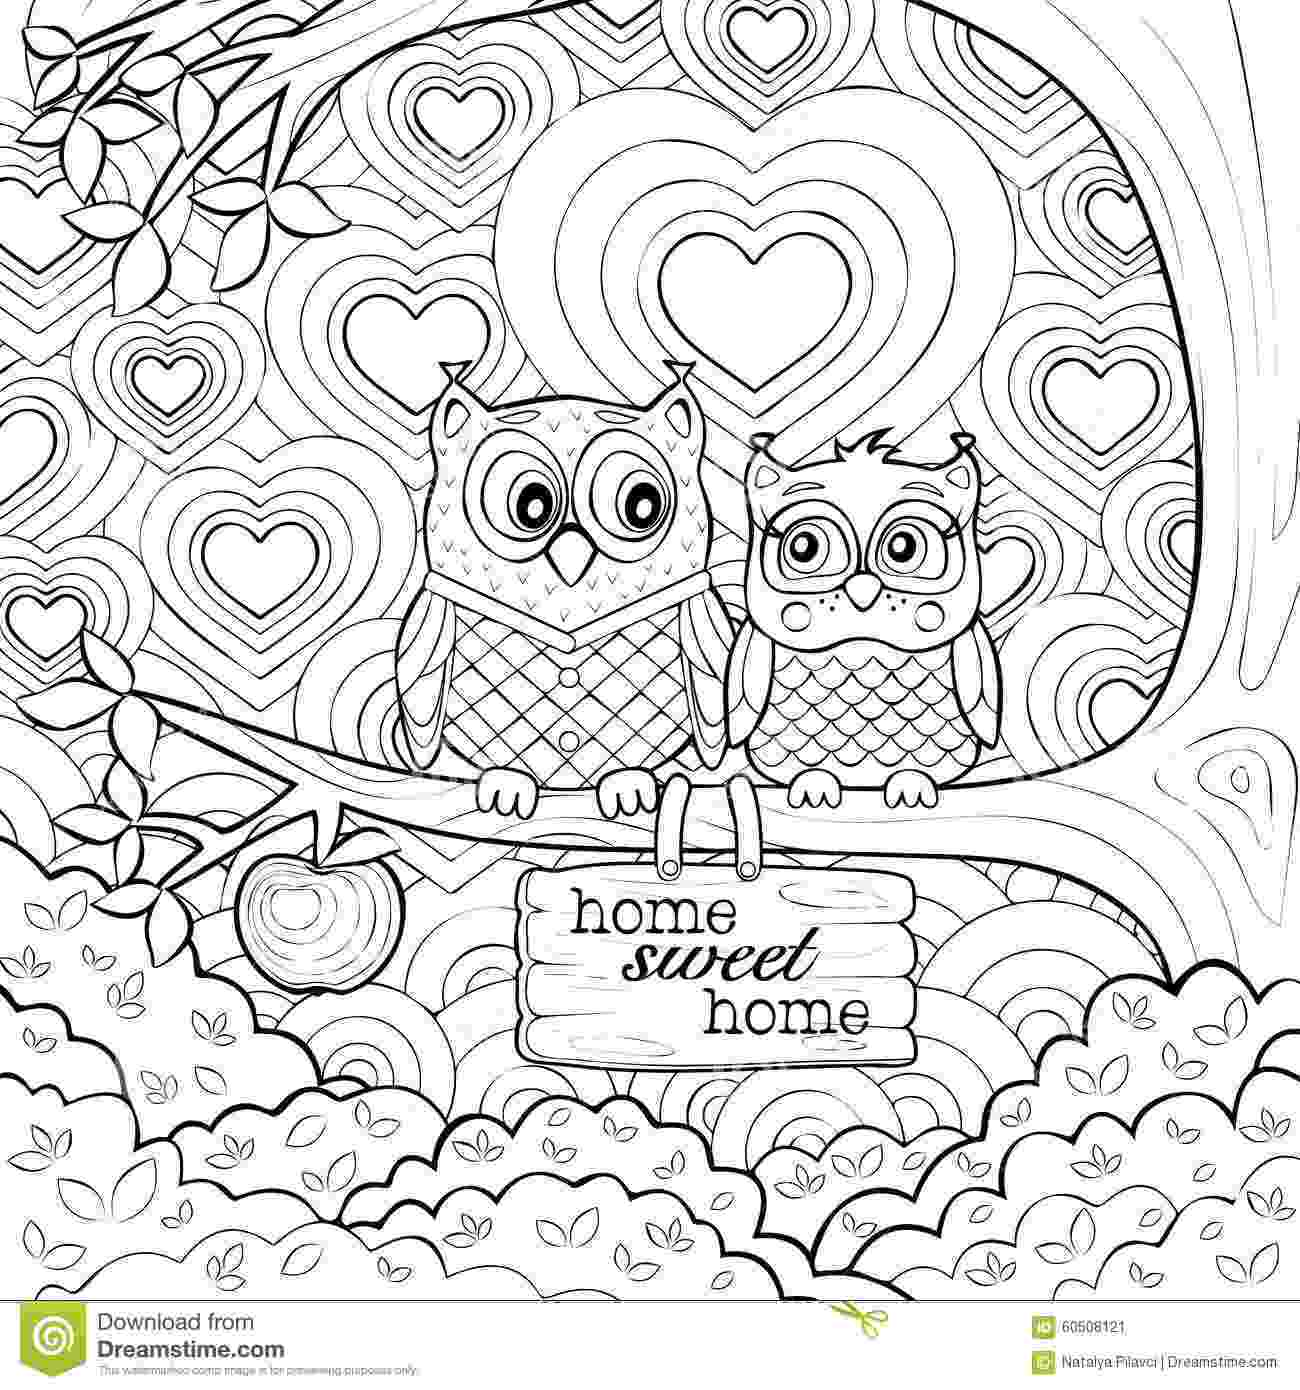 art pages to color the arts coloring pages and printables classroom doodles art to pages color